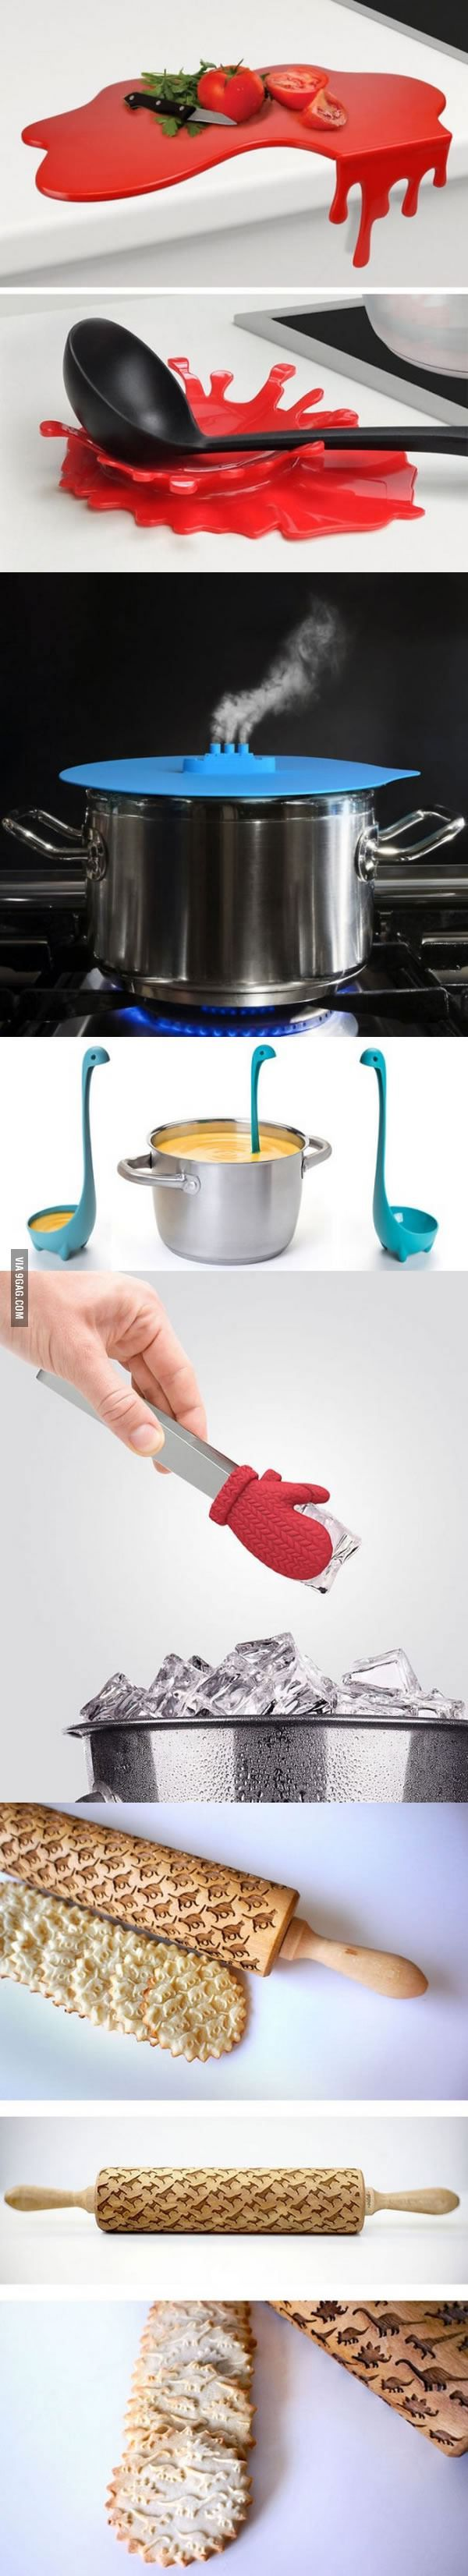 Creative kitchen gadgets